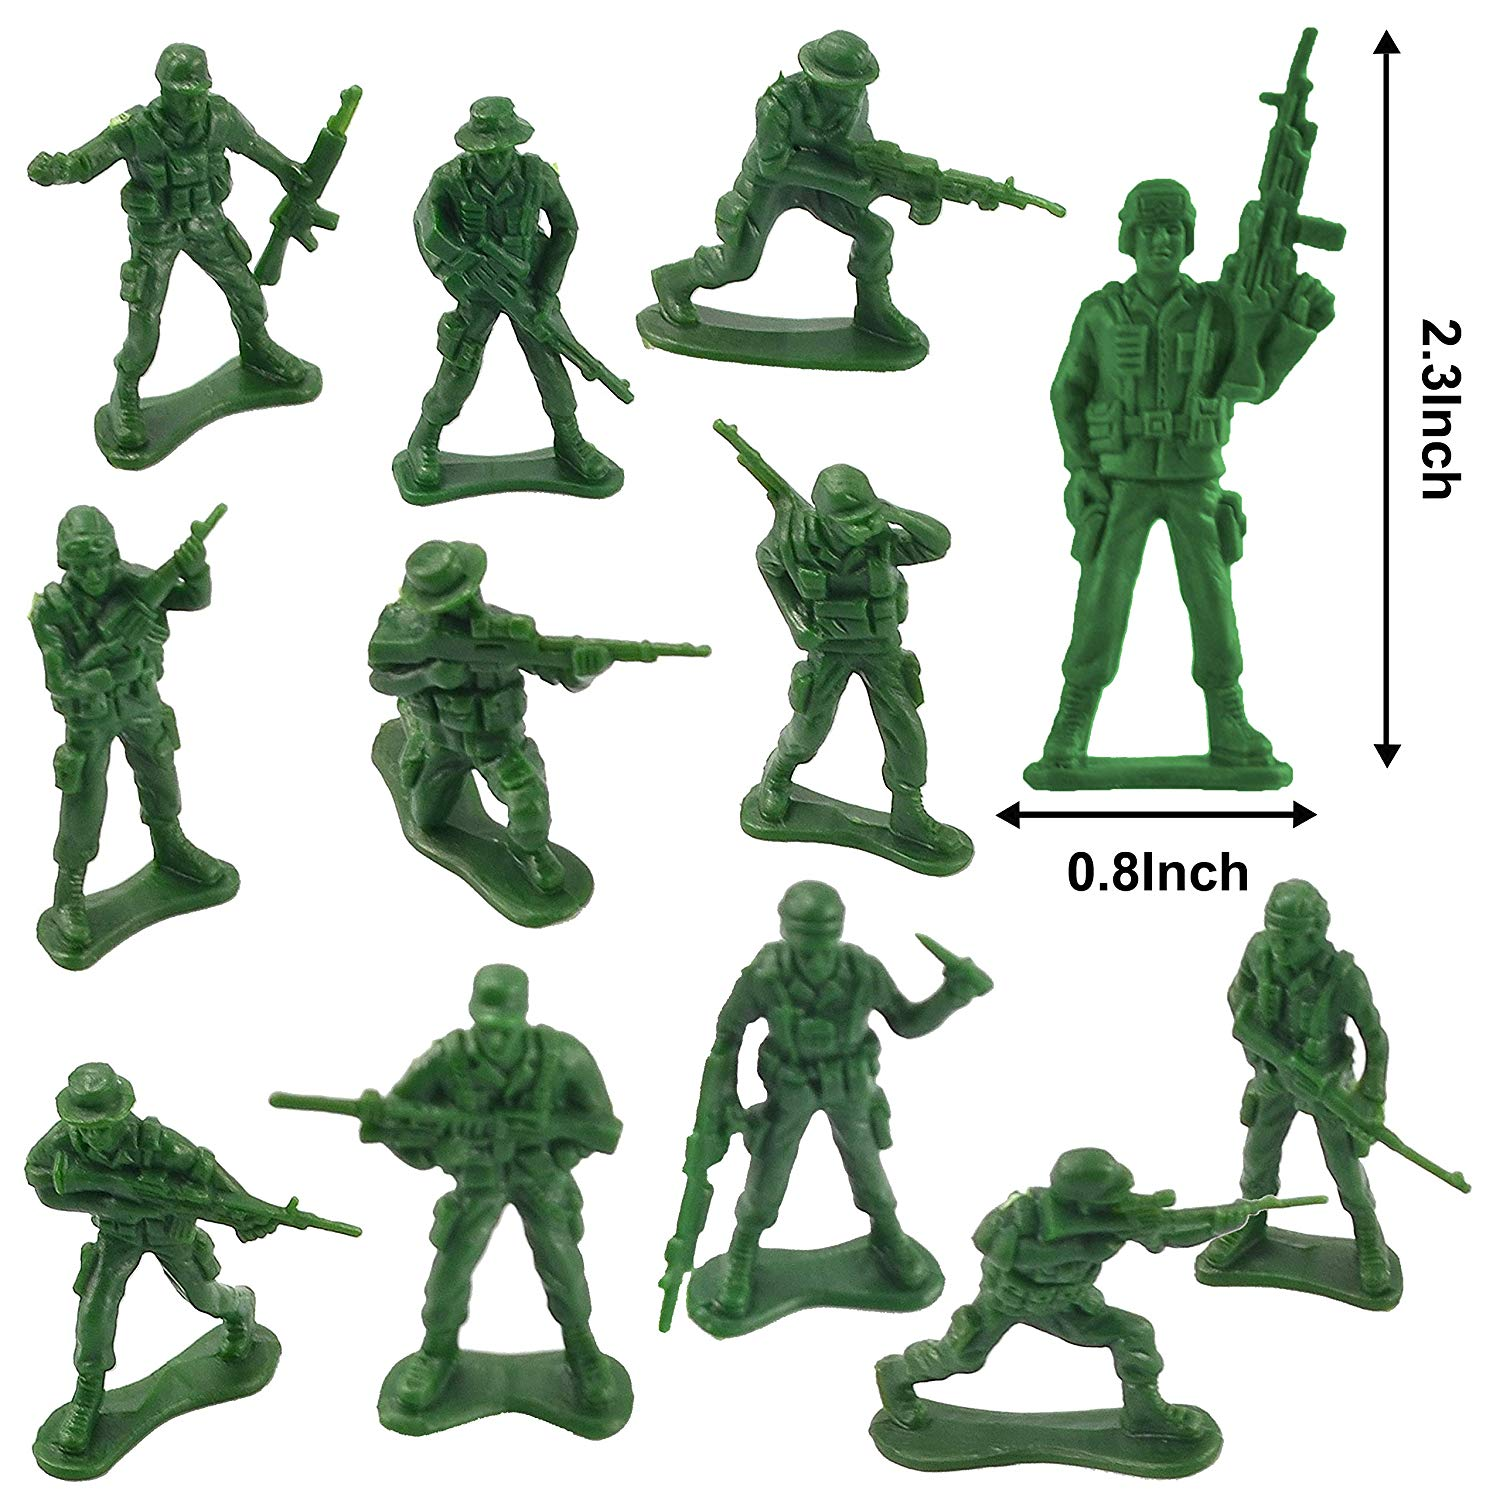 Easter Eggs with Army Men Action Figures